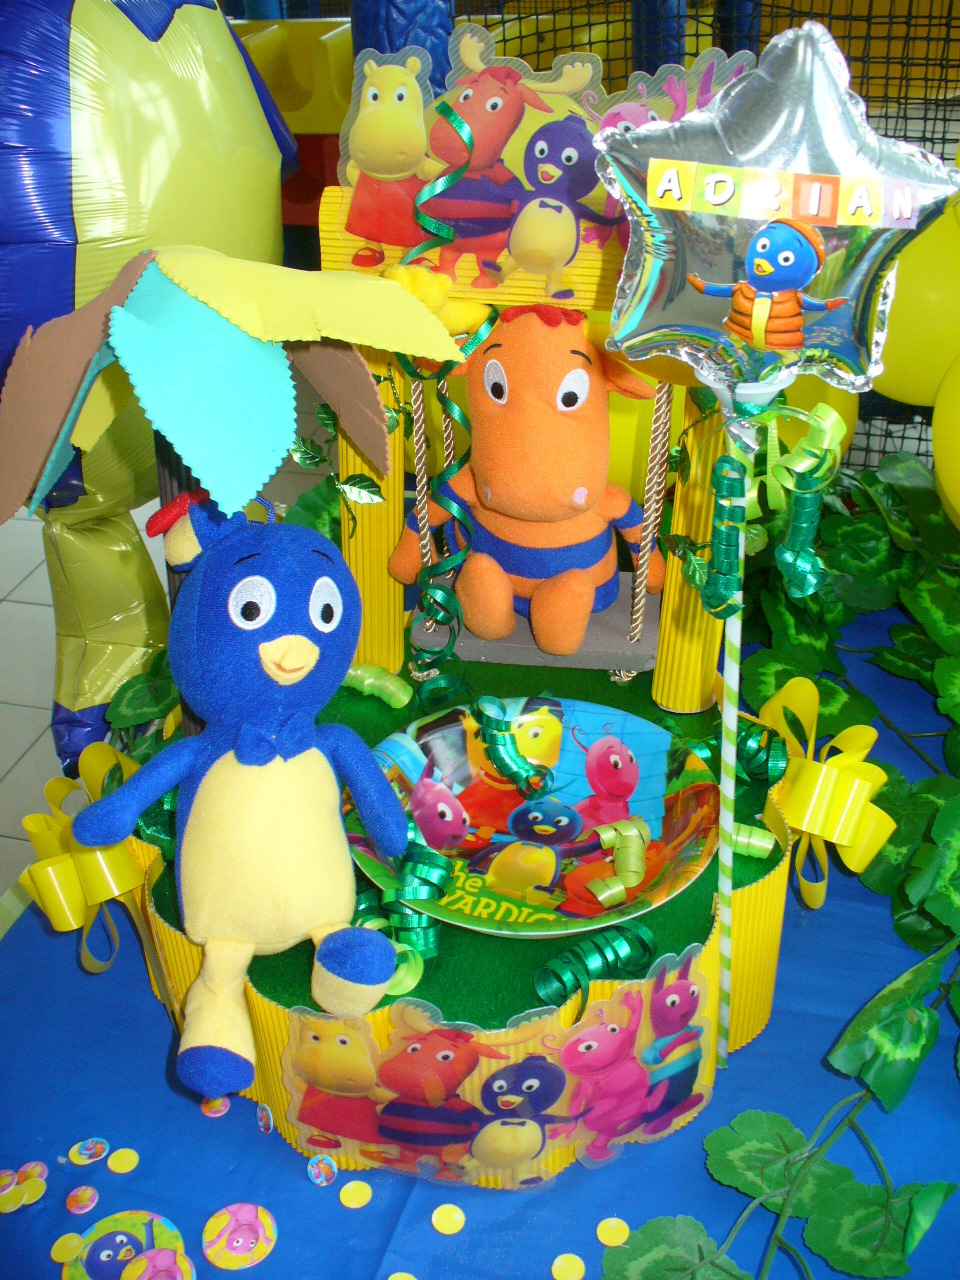 backyardigans_regalos